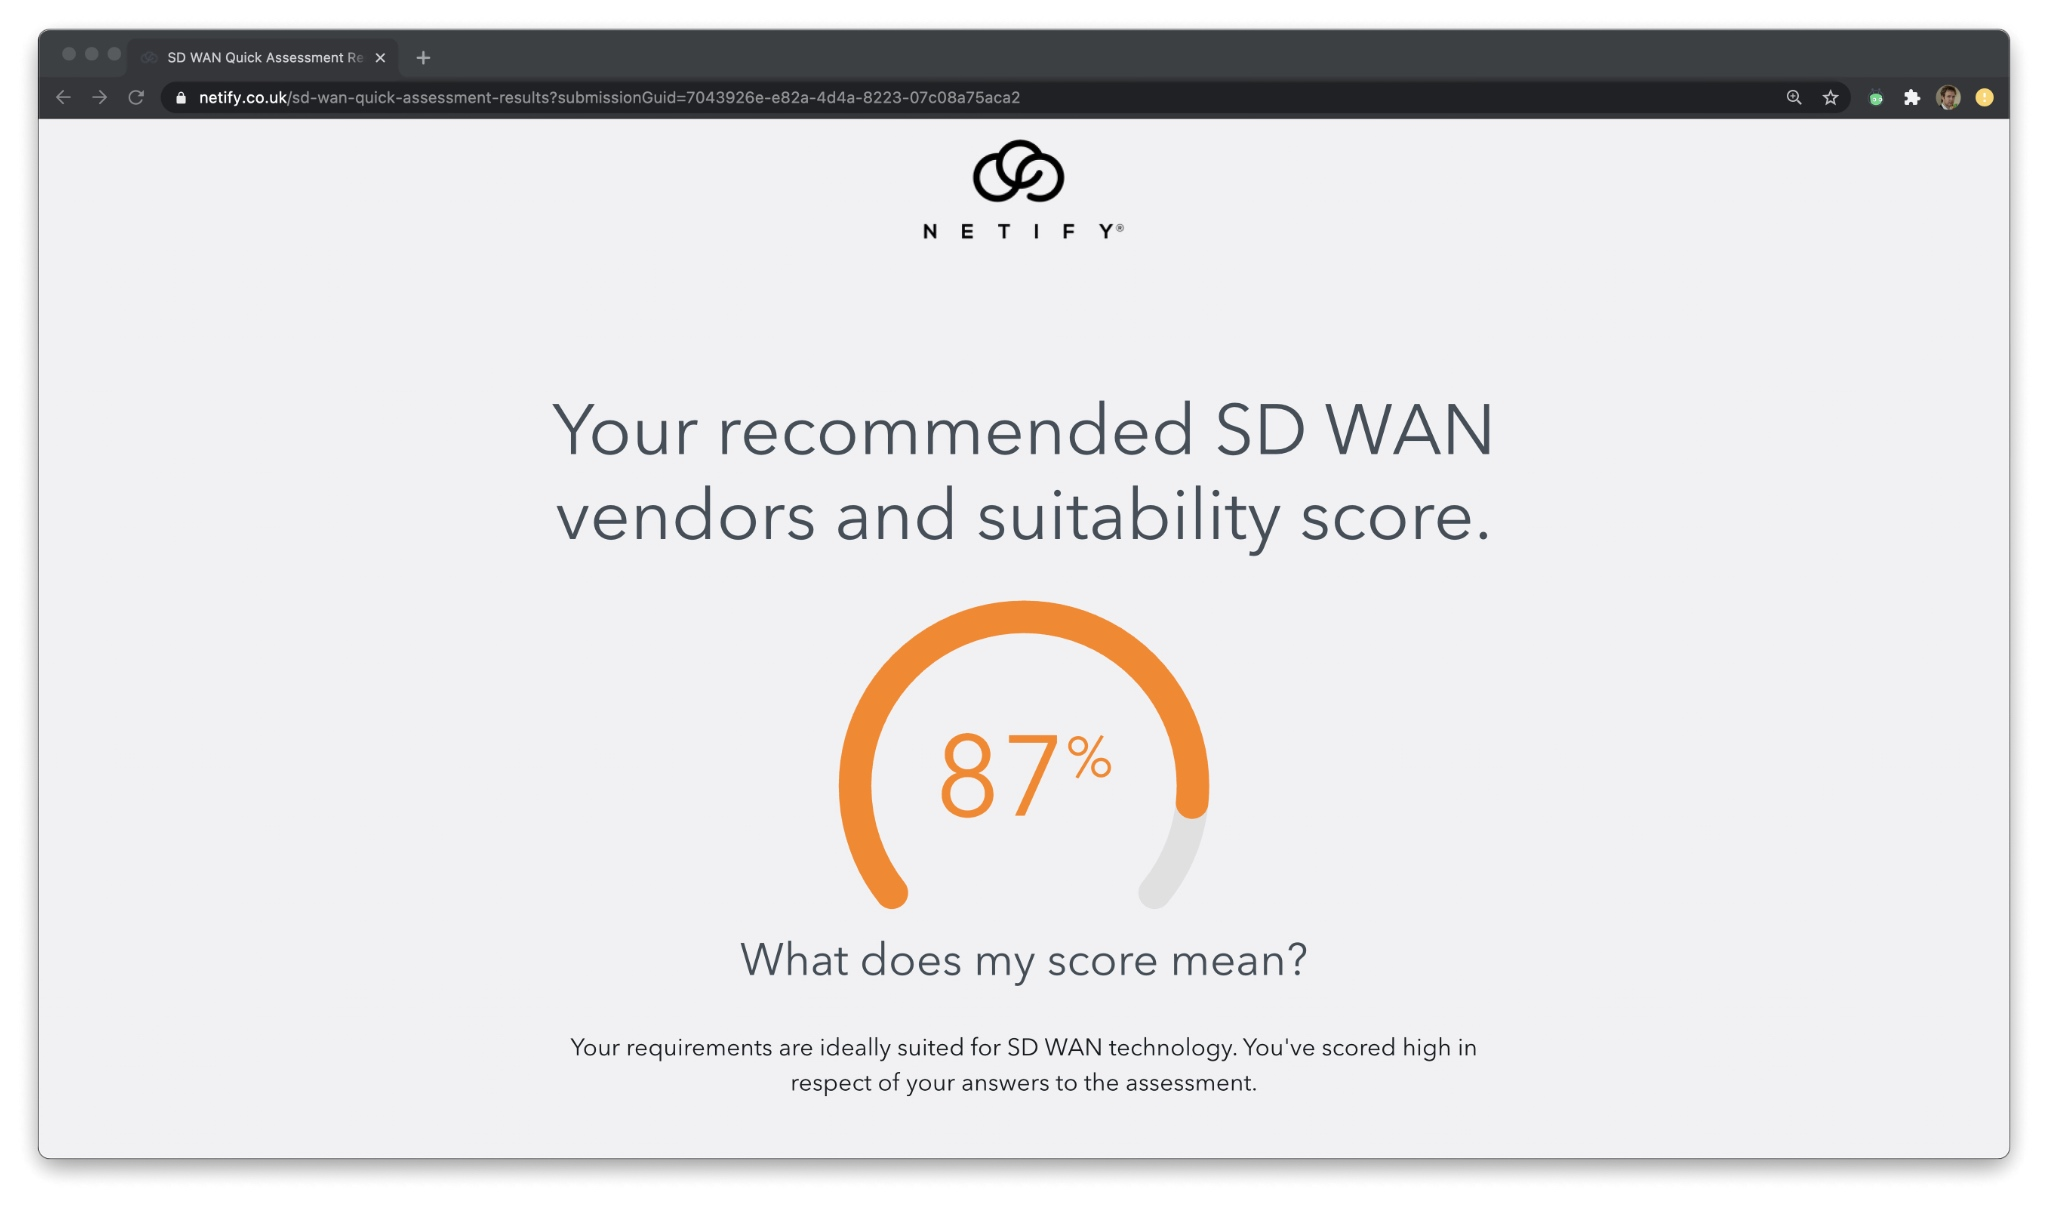 SD WAN Providers - Score my requirements